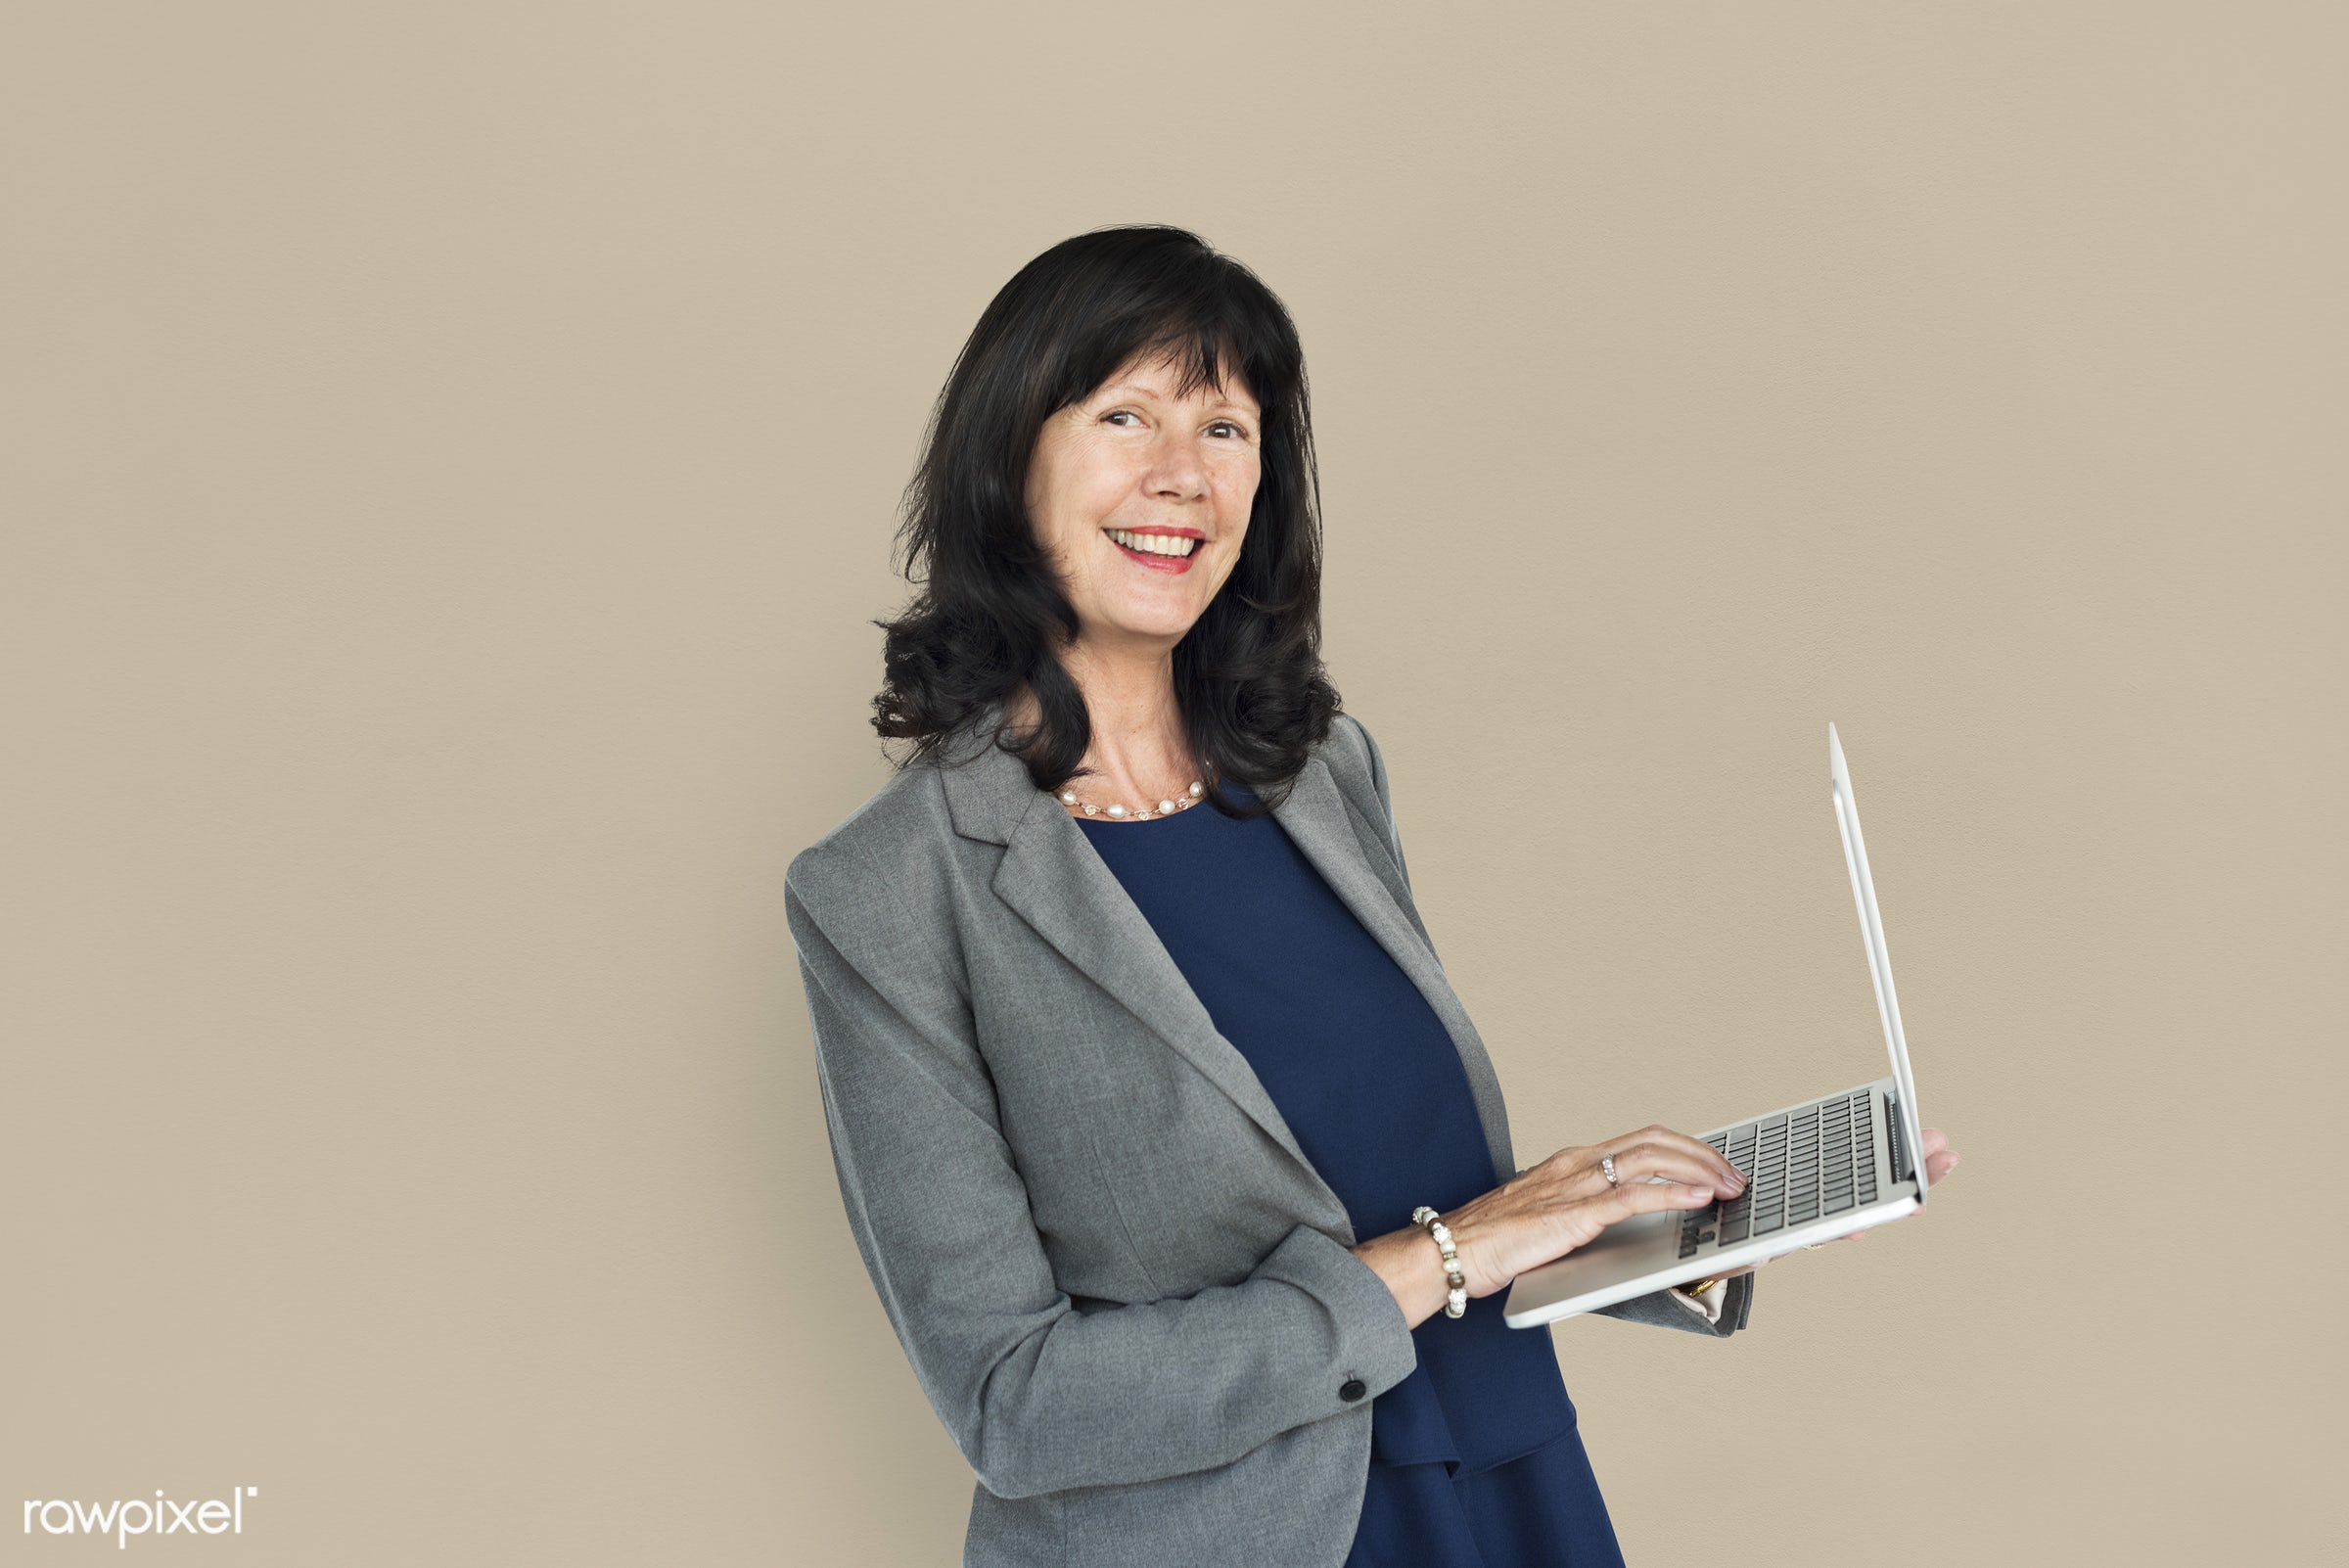 studio, expression, person, business wear, people, business, caucasian, girl, woman, happy, laptop, smile, positive,...